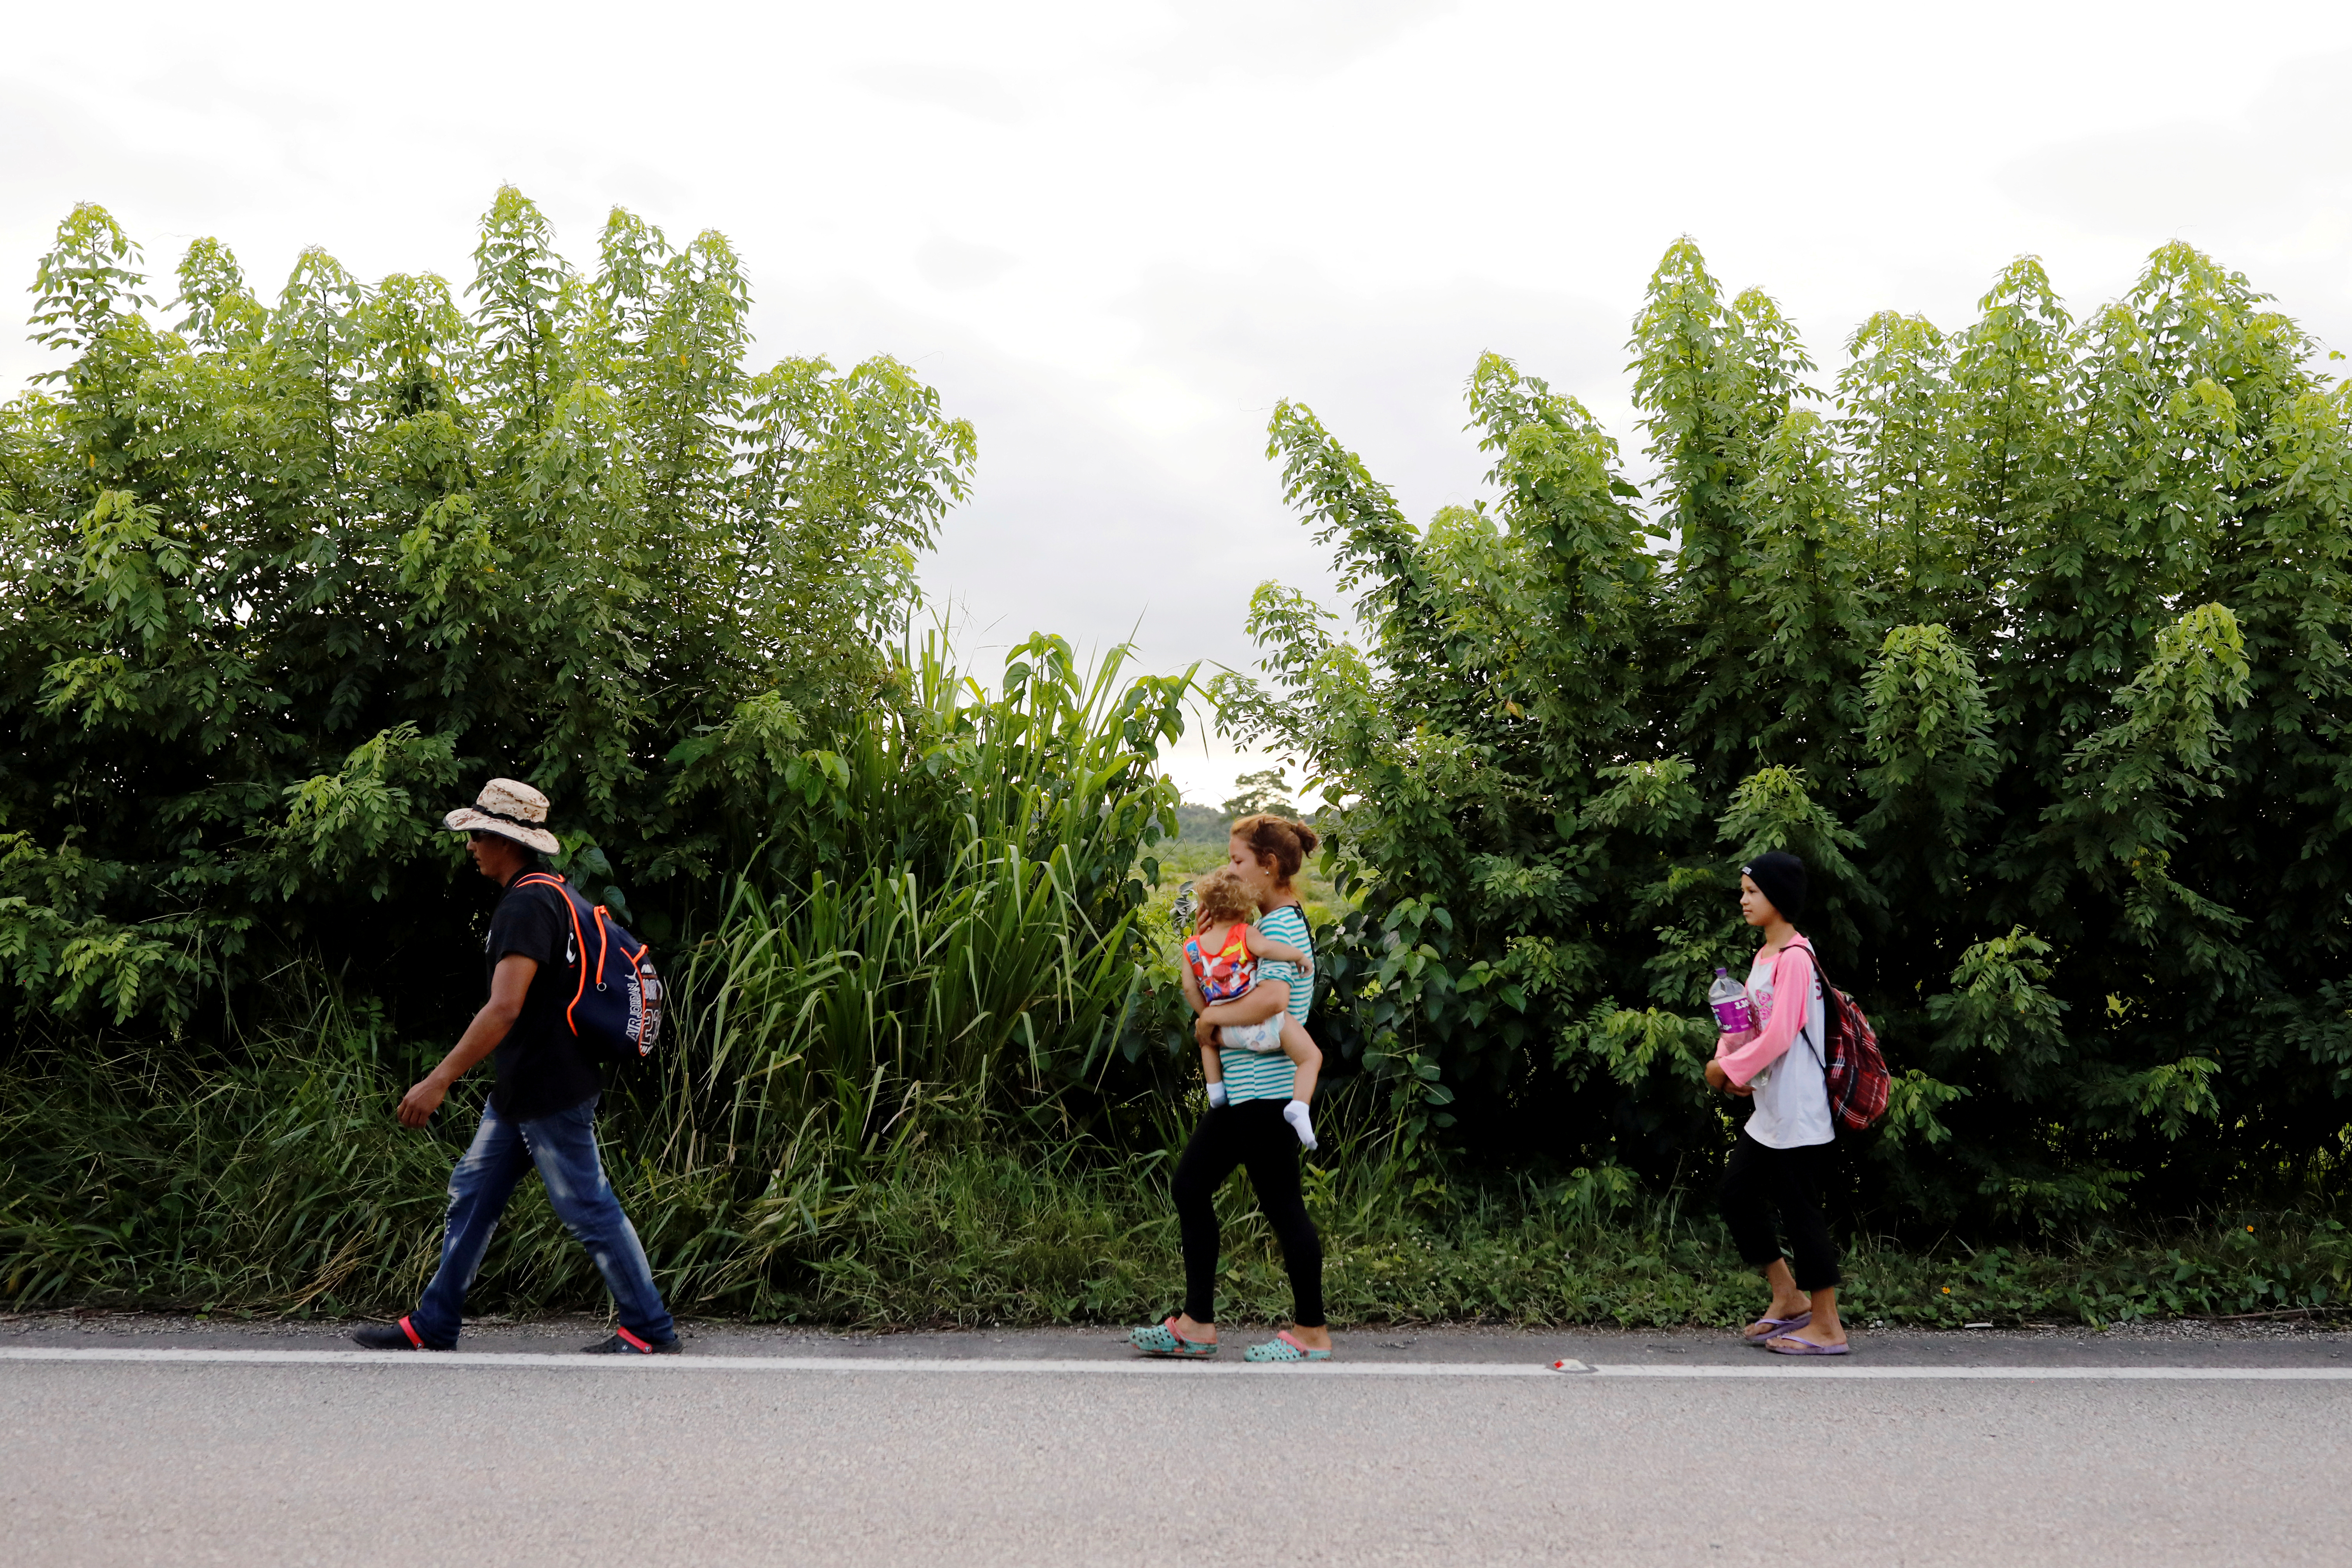 Honduran migrants trying to reach the U.S. walk along a road as they move towards the Mexico border, in San Pedro Cadenas, Guatemala October 3, 2020. REUTERS/Luis Echeverria/File Photo